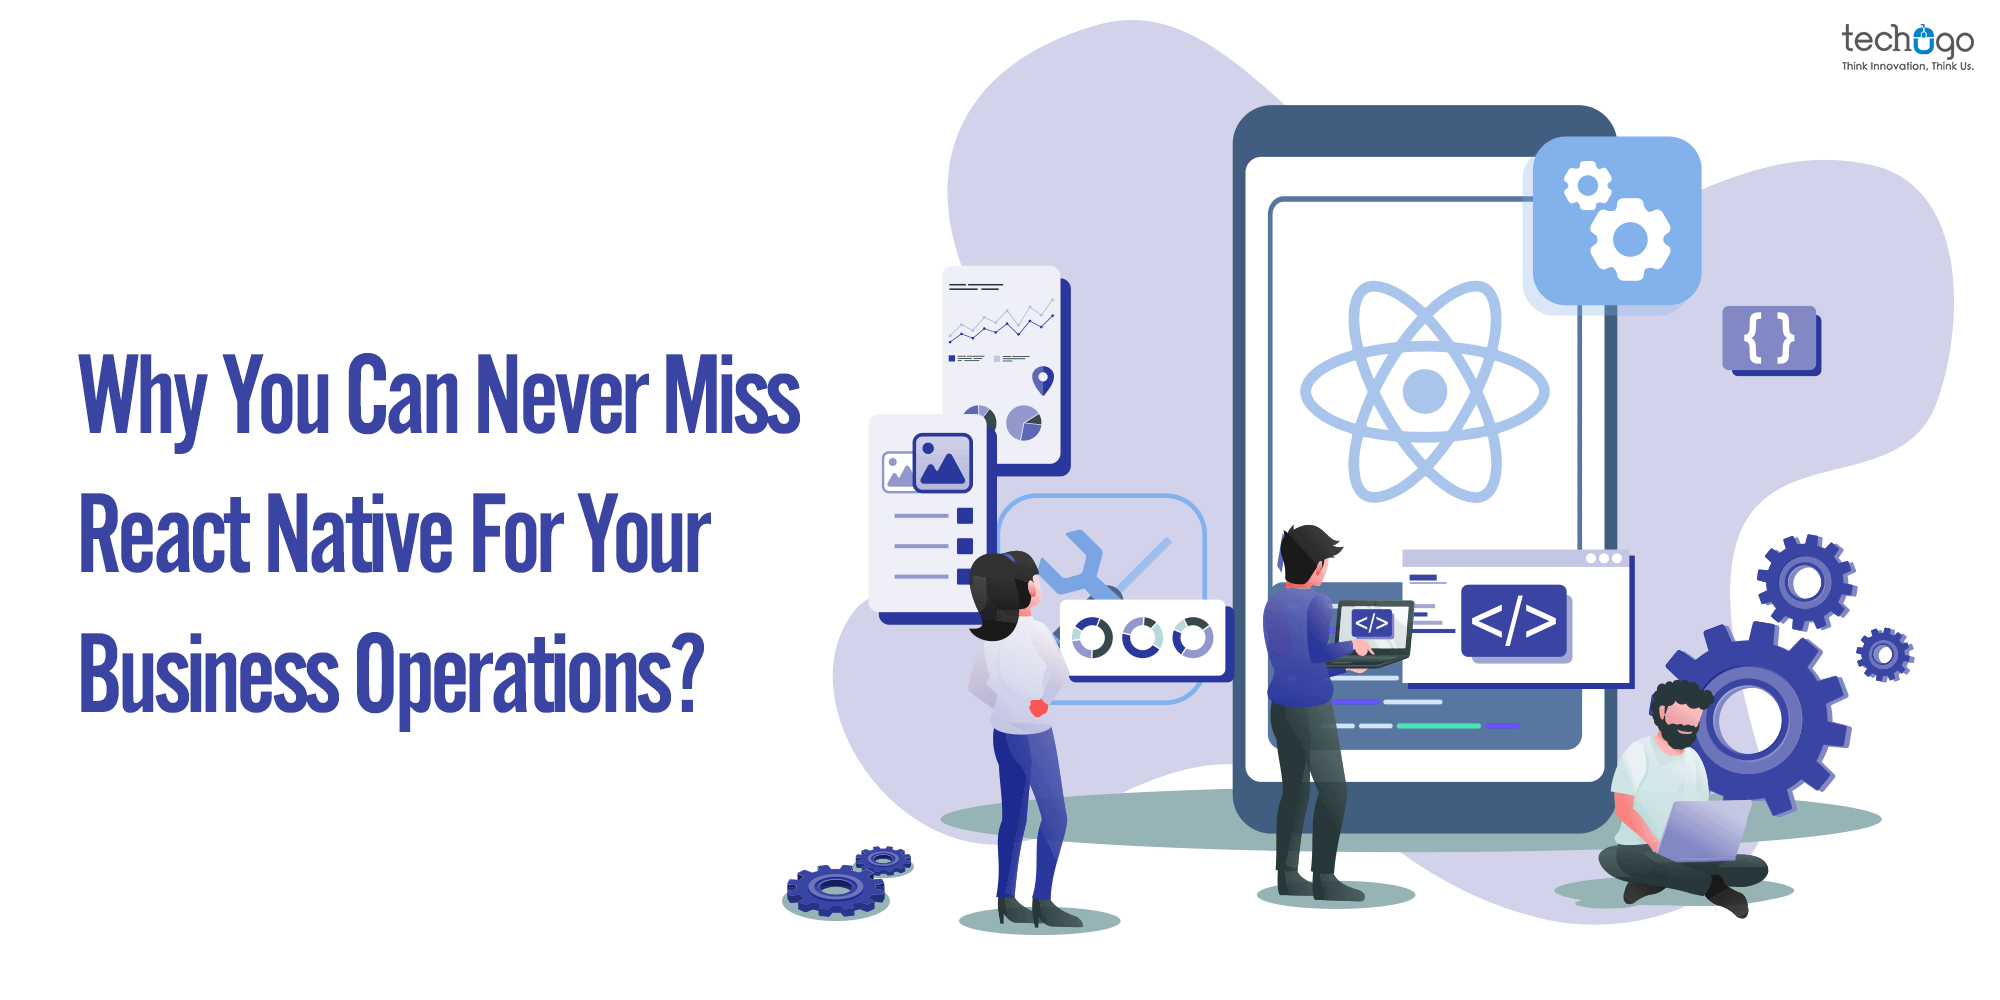 Why You Can Never Miss React Native For Your Business Operations